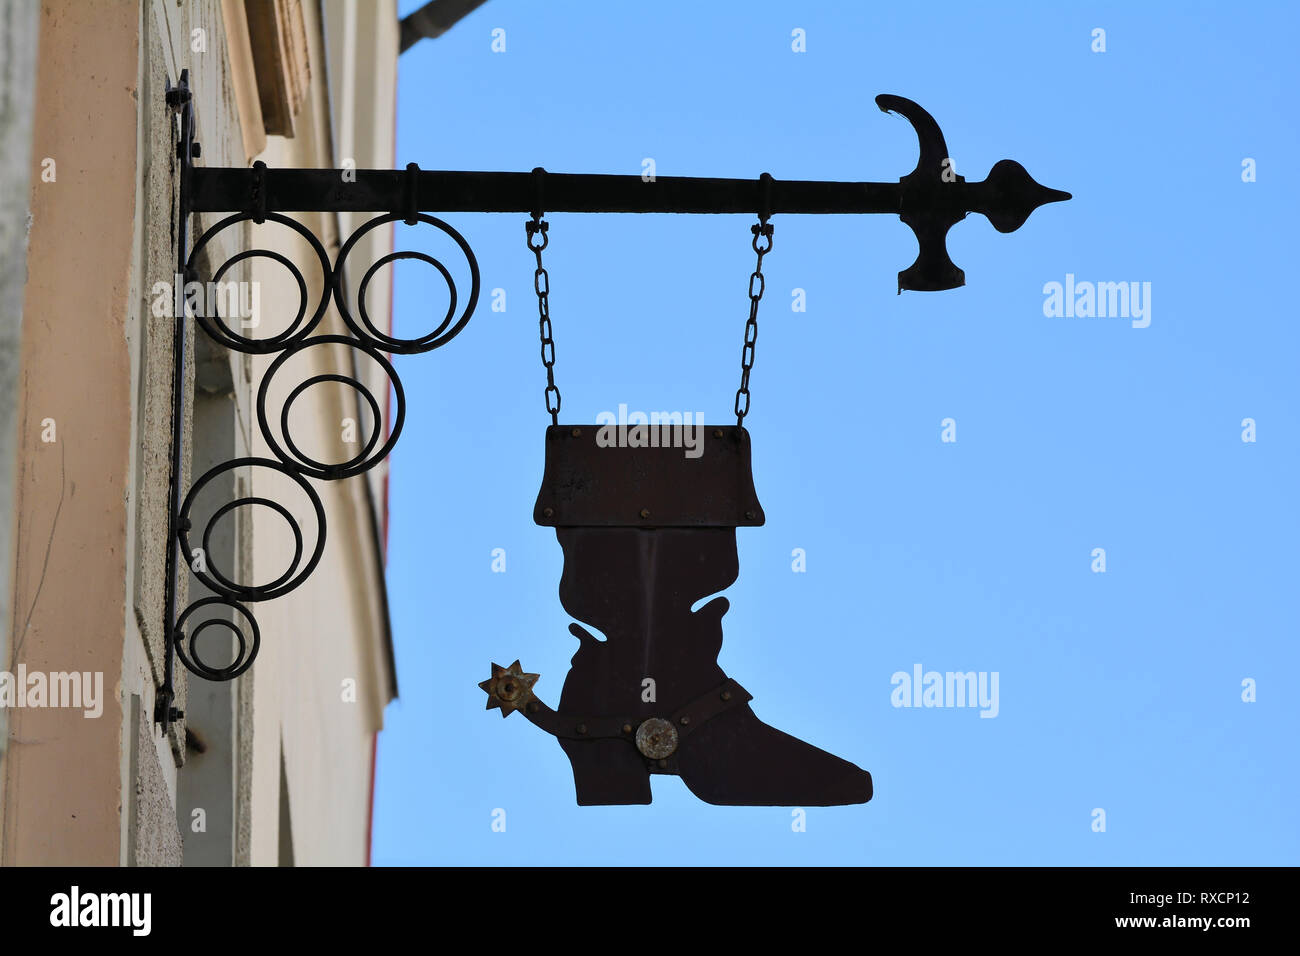 Shoemaker in the old town of Wismar in Germany - Stock Image